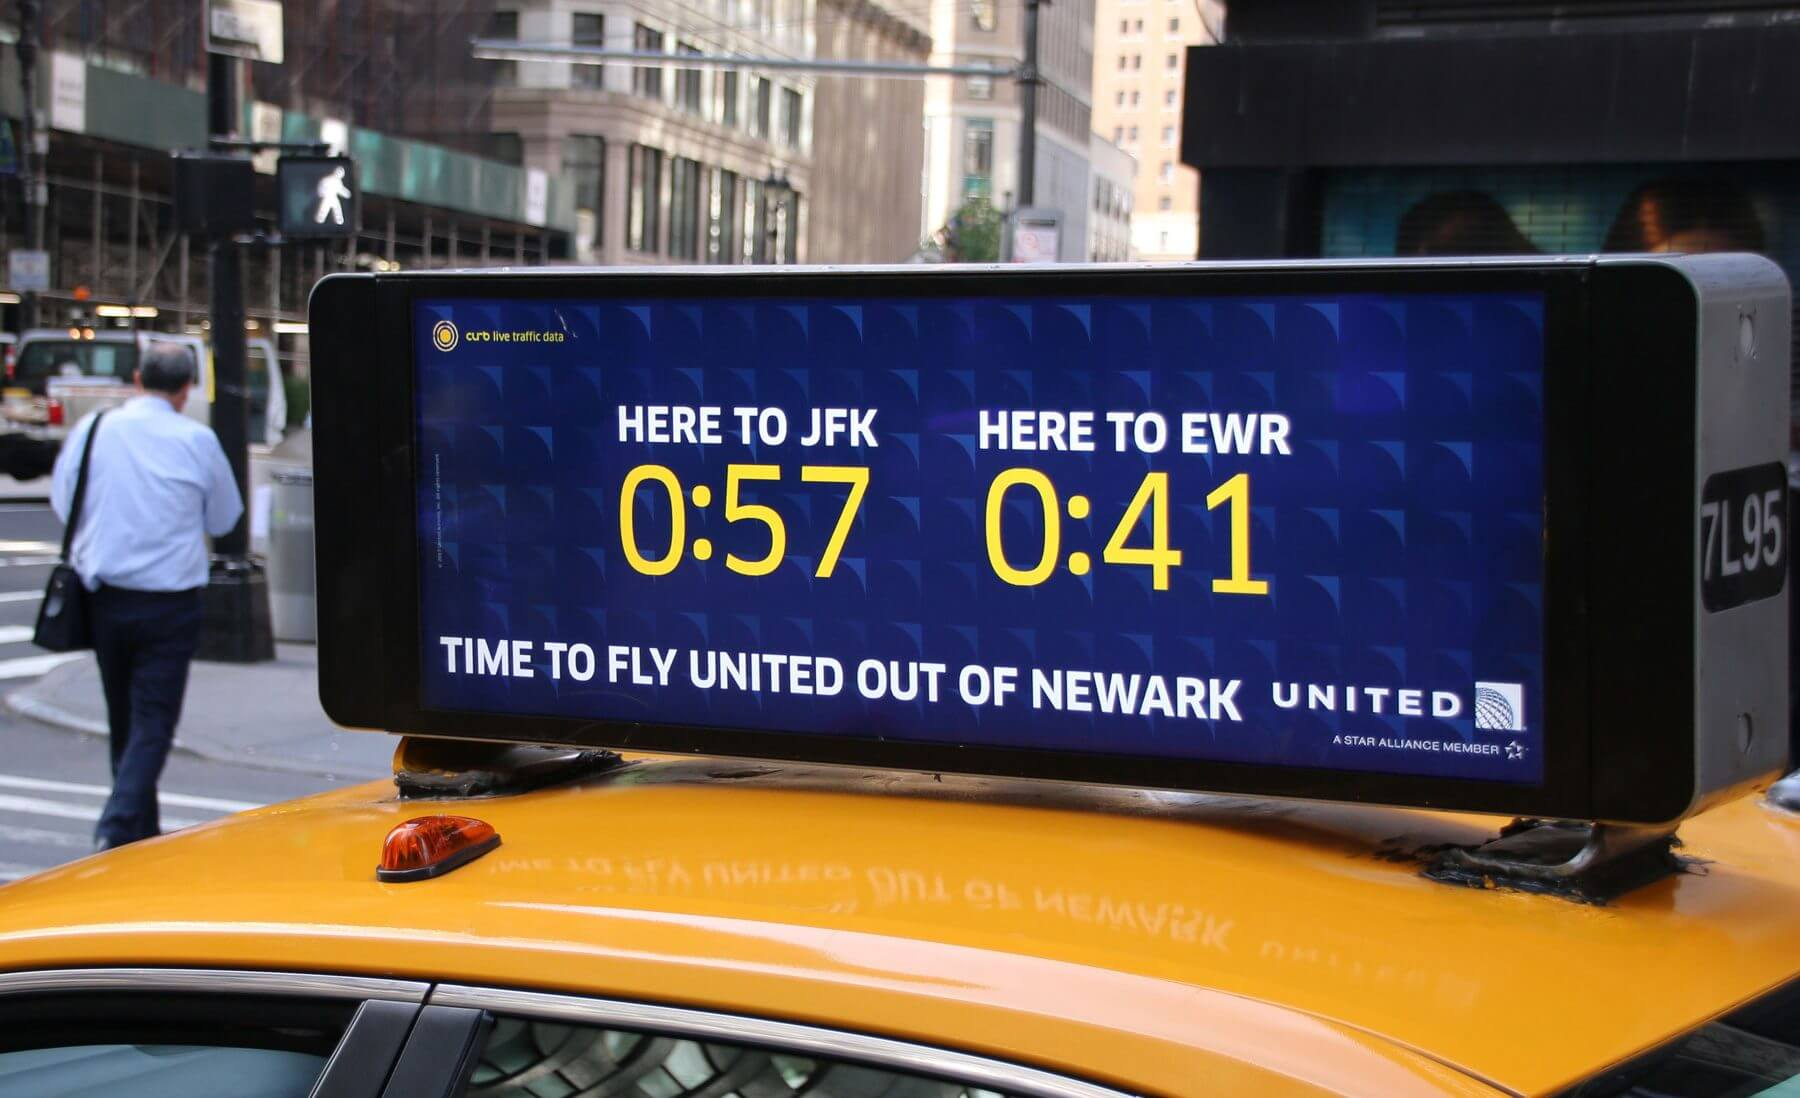 Digital taxi top on yellow taxi featuring United Airlines advertisement